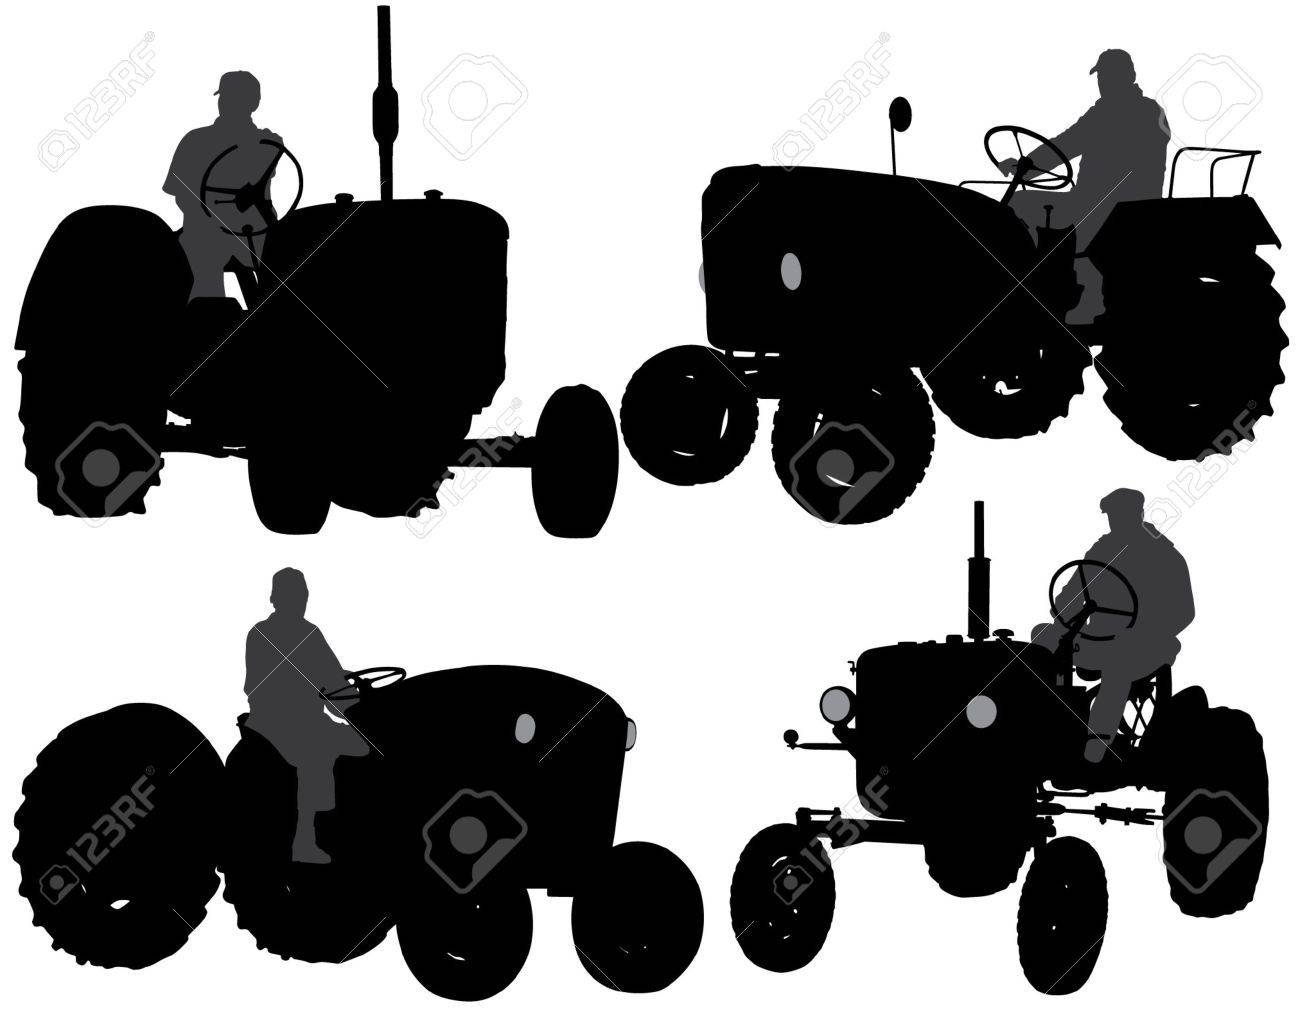 4,684 Farmer Silhouette Stock Vector Illustration And Royalty Free ...